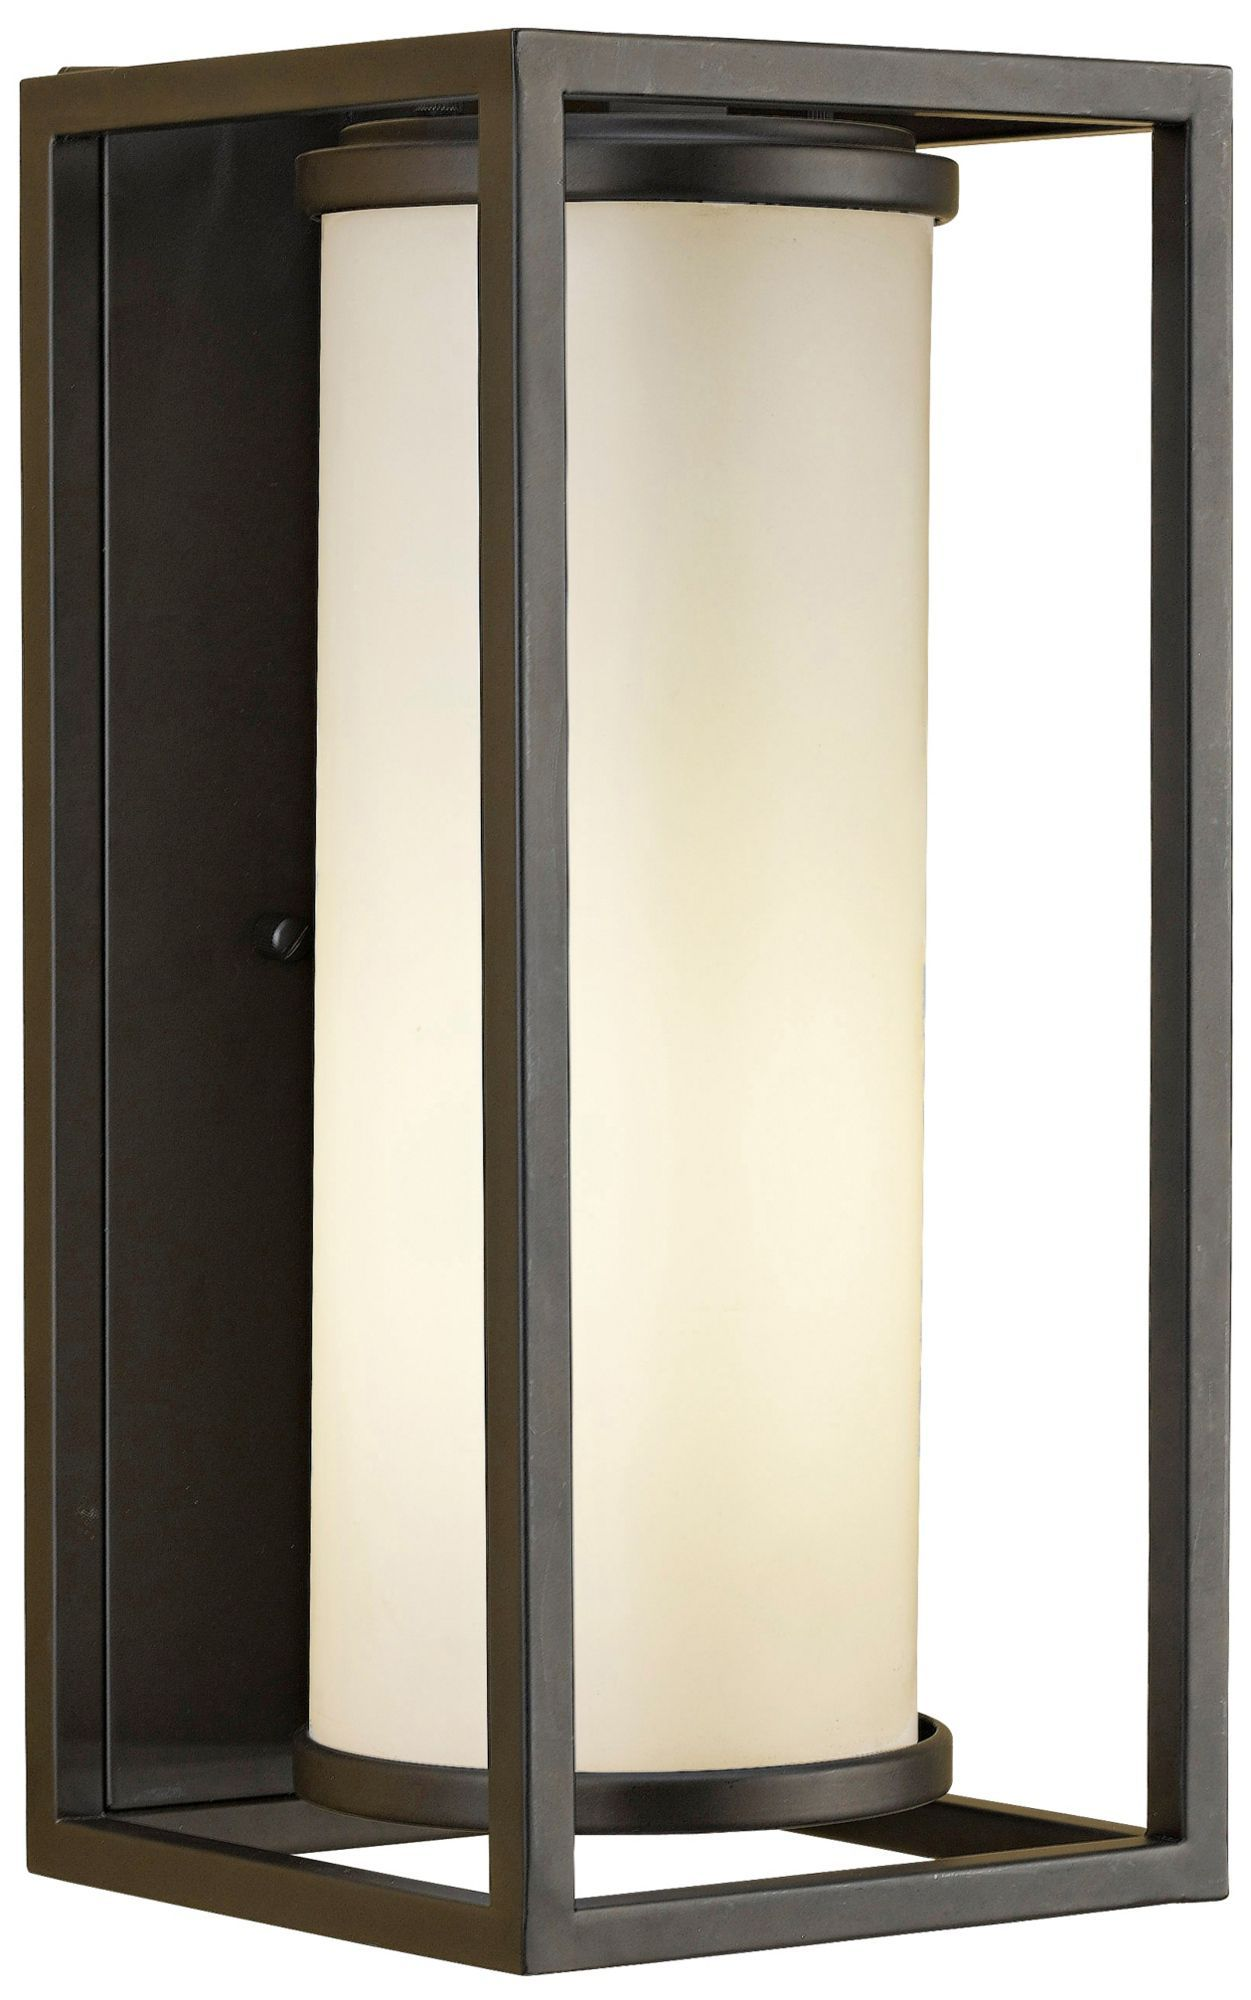 industrial style outdoor lighting. industrial moderne 14 3/4-inch-h murray feiss outdoor light - euro style lighting